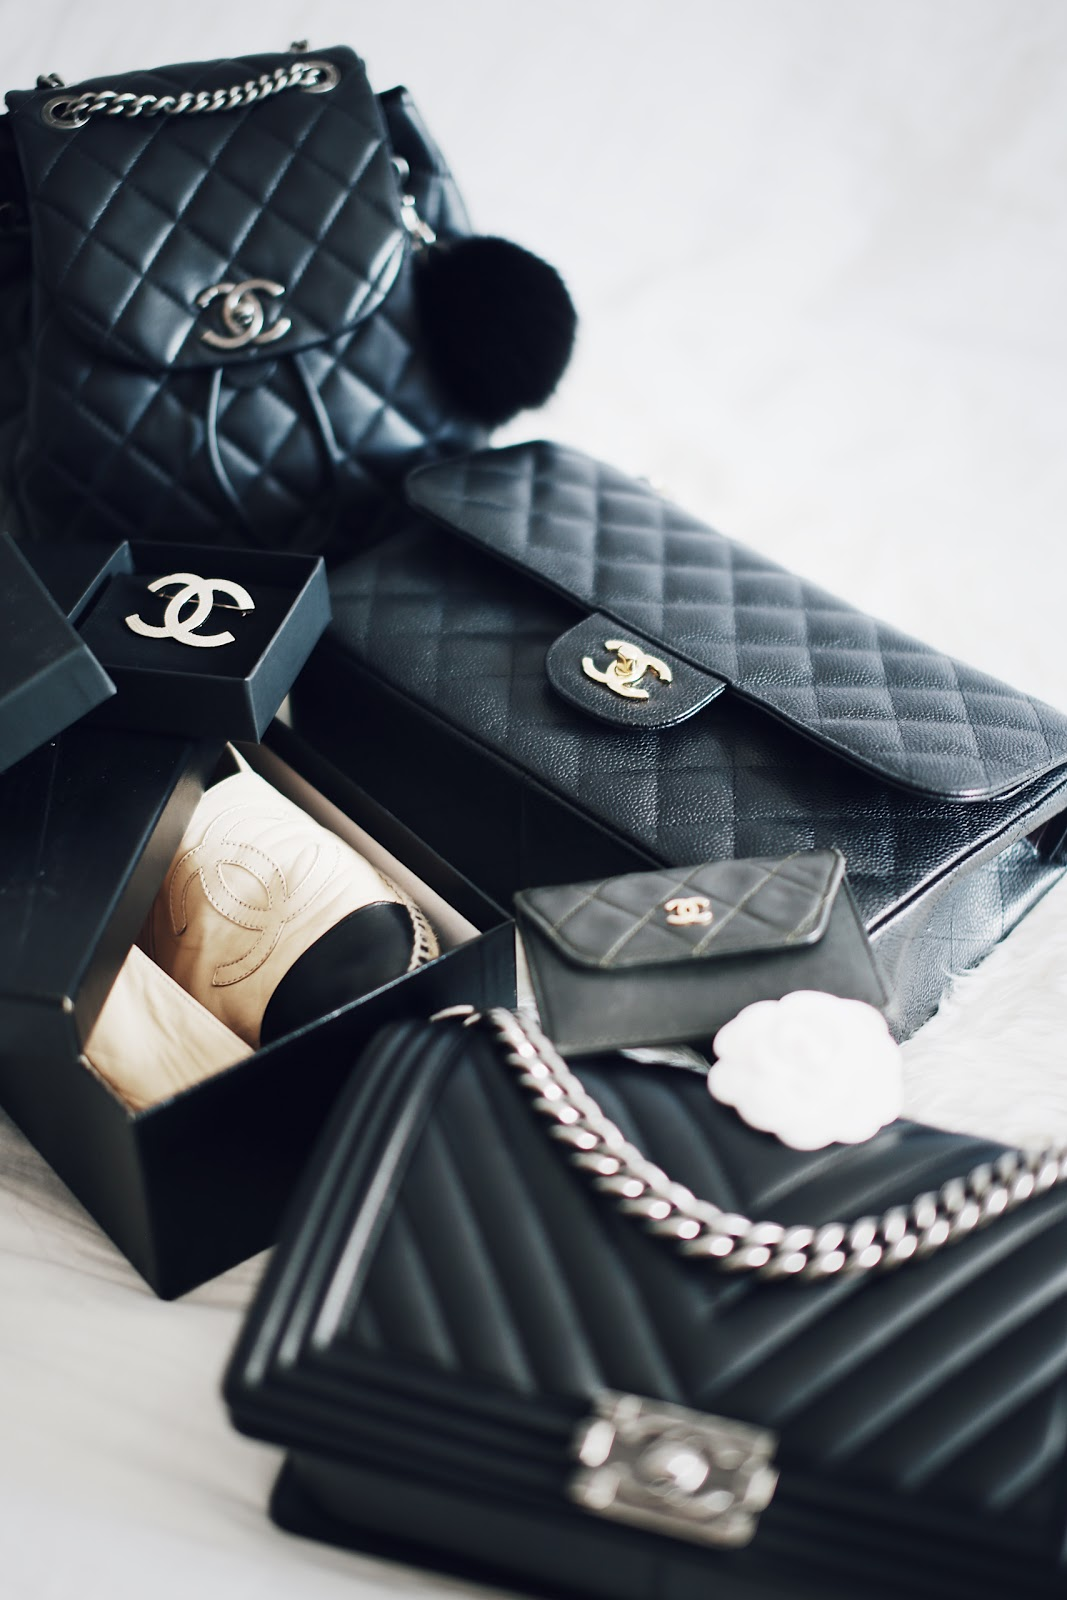 f3ff7ba245c0 It had been a dream of mine since I was younger to be able to add Chanel  into my collection. Of course, working part-time and attending college full-time,  ...